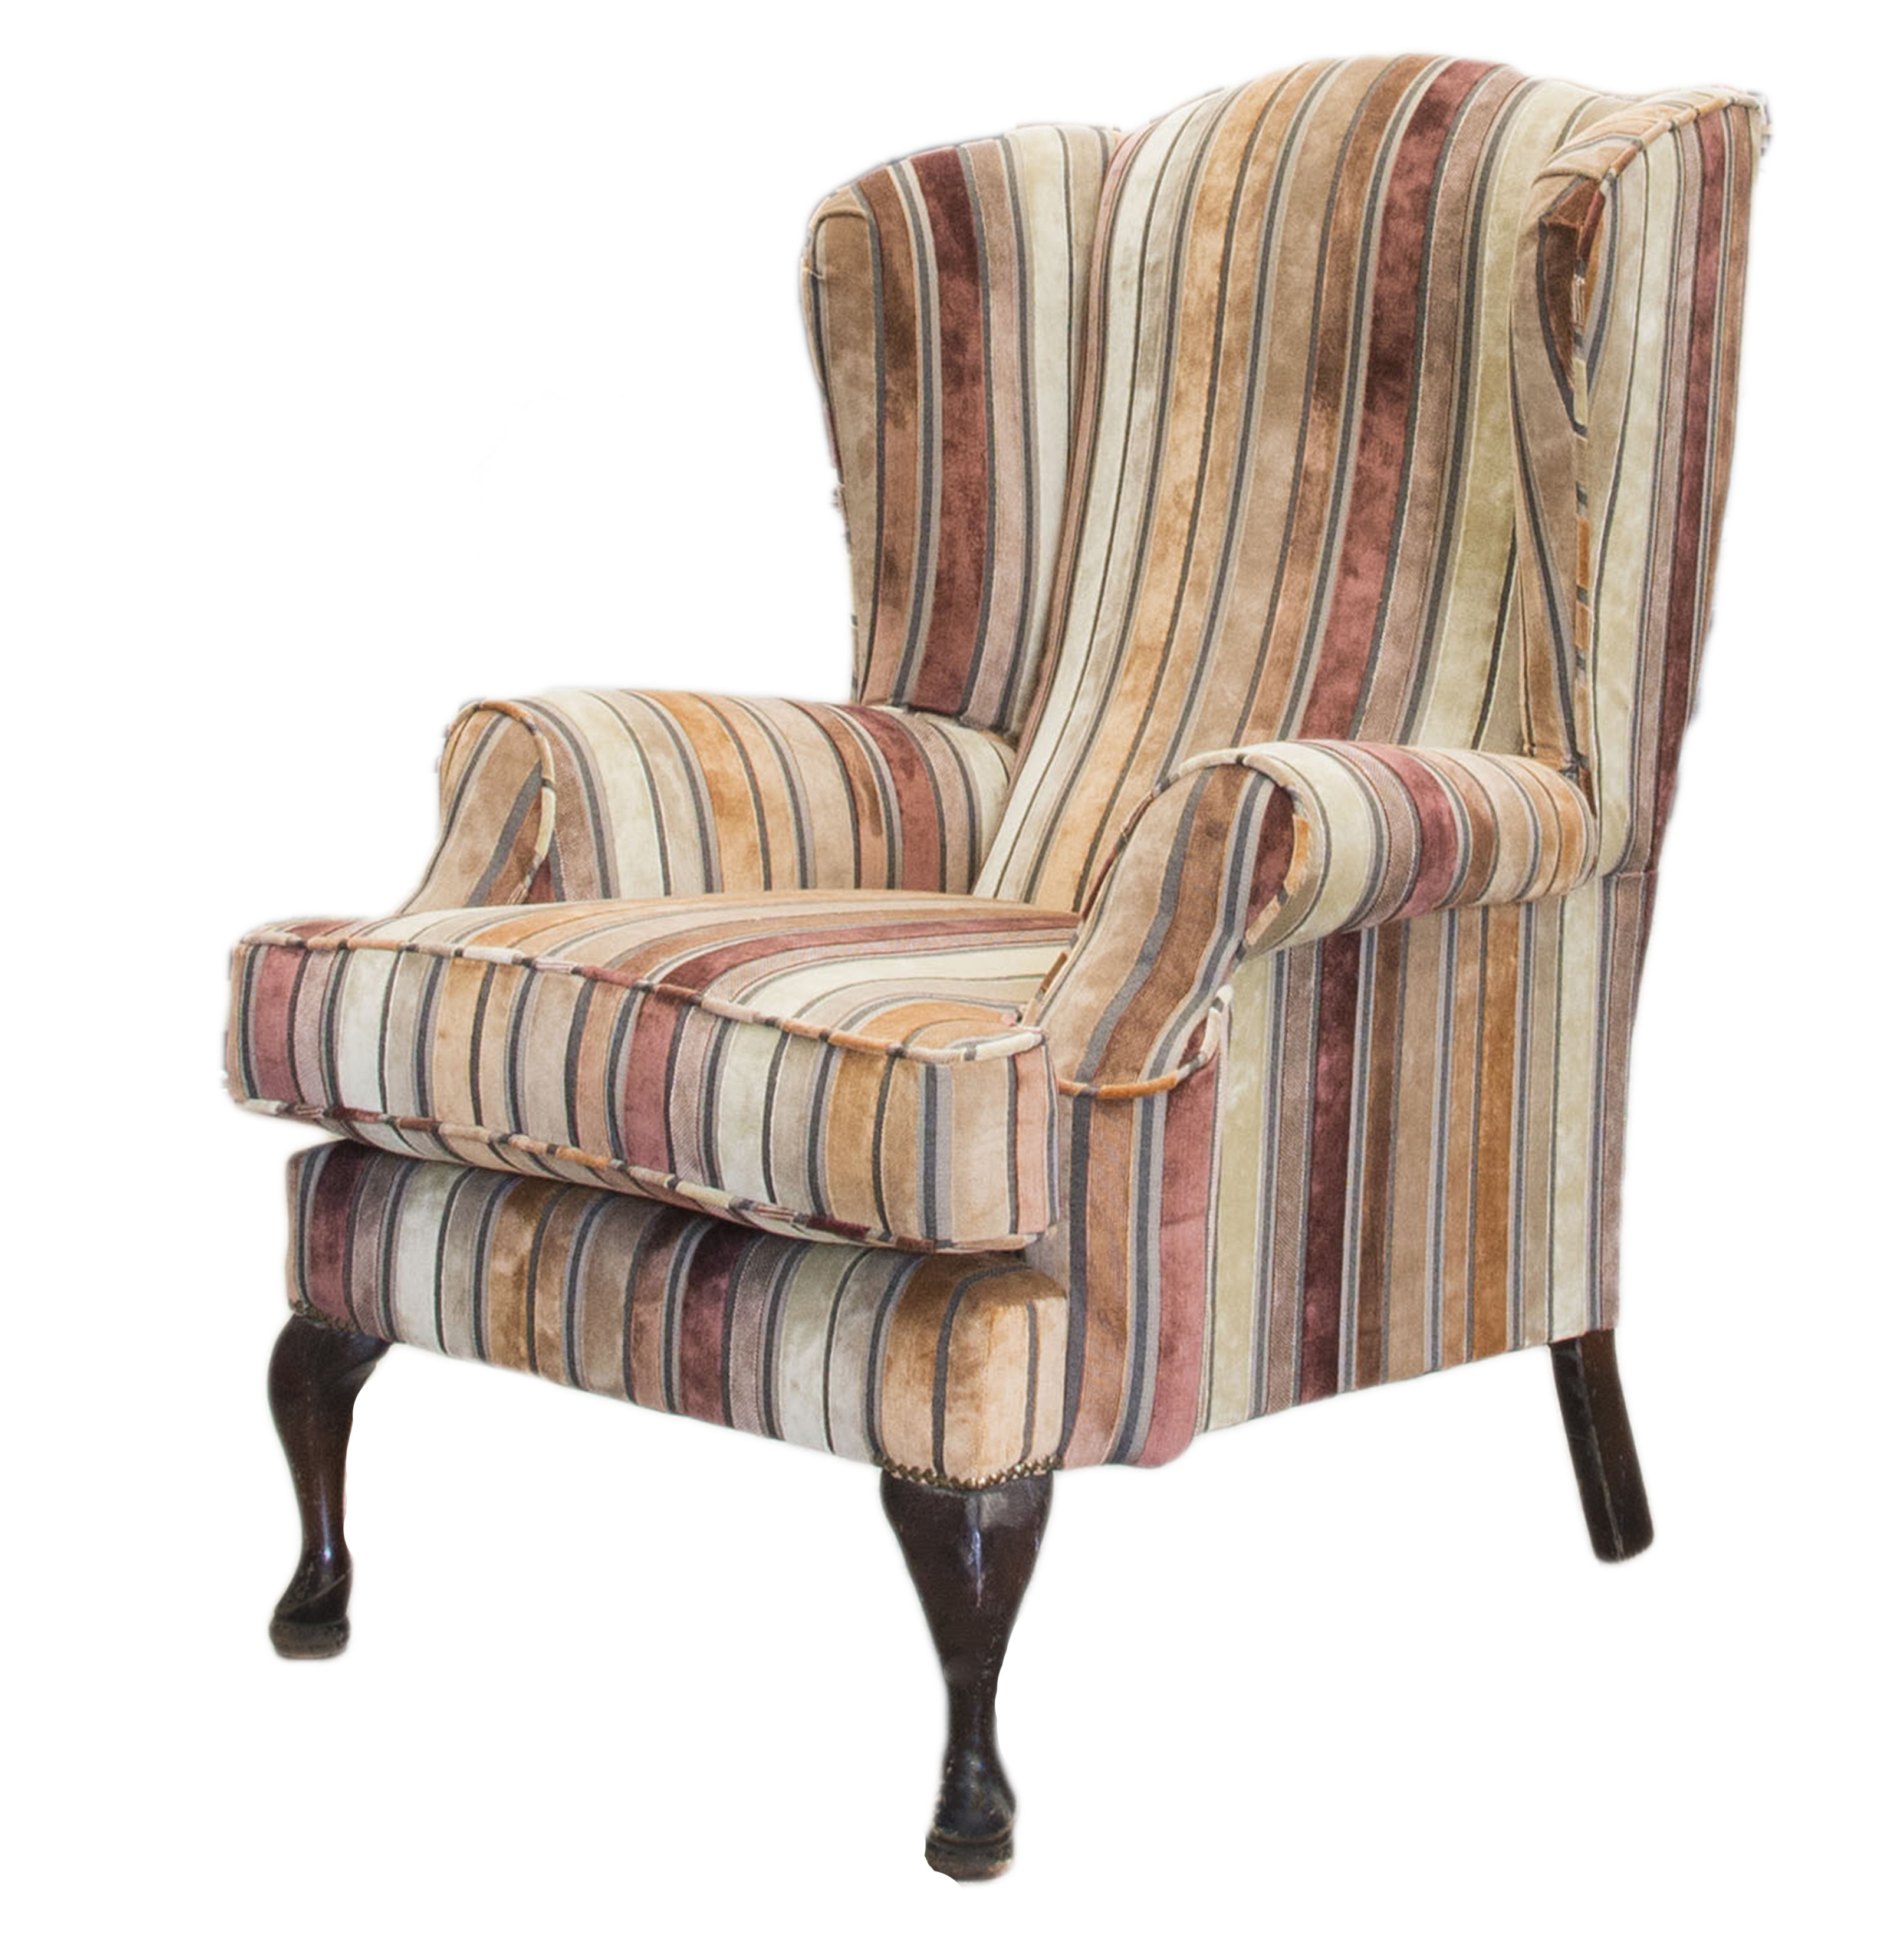 Queen Anne Chair After side